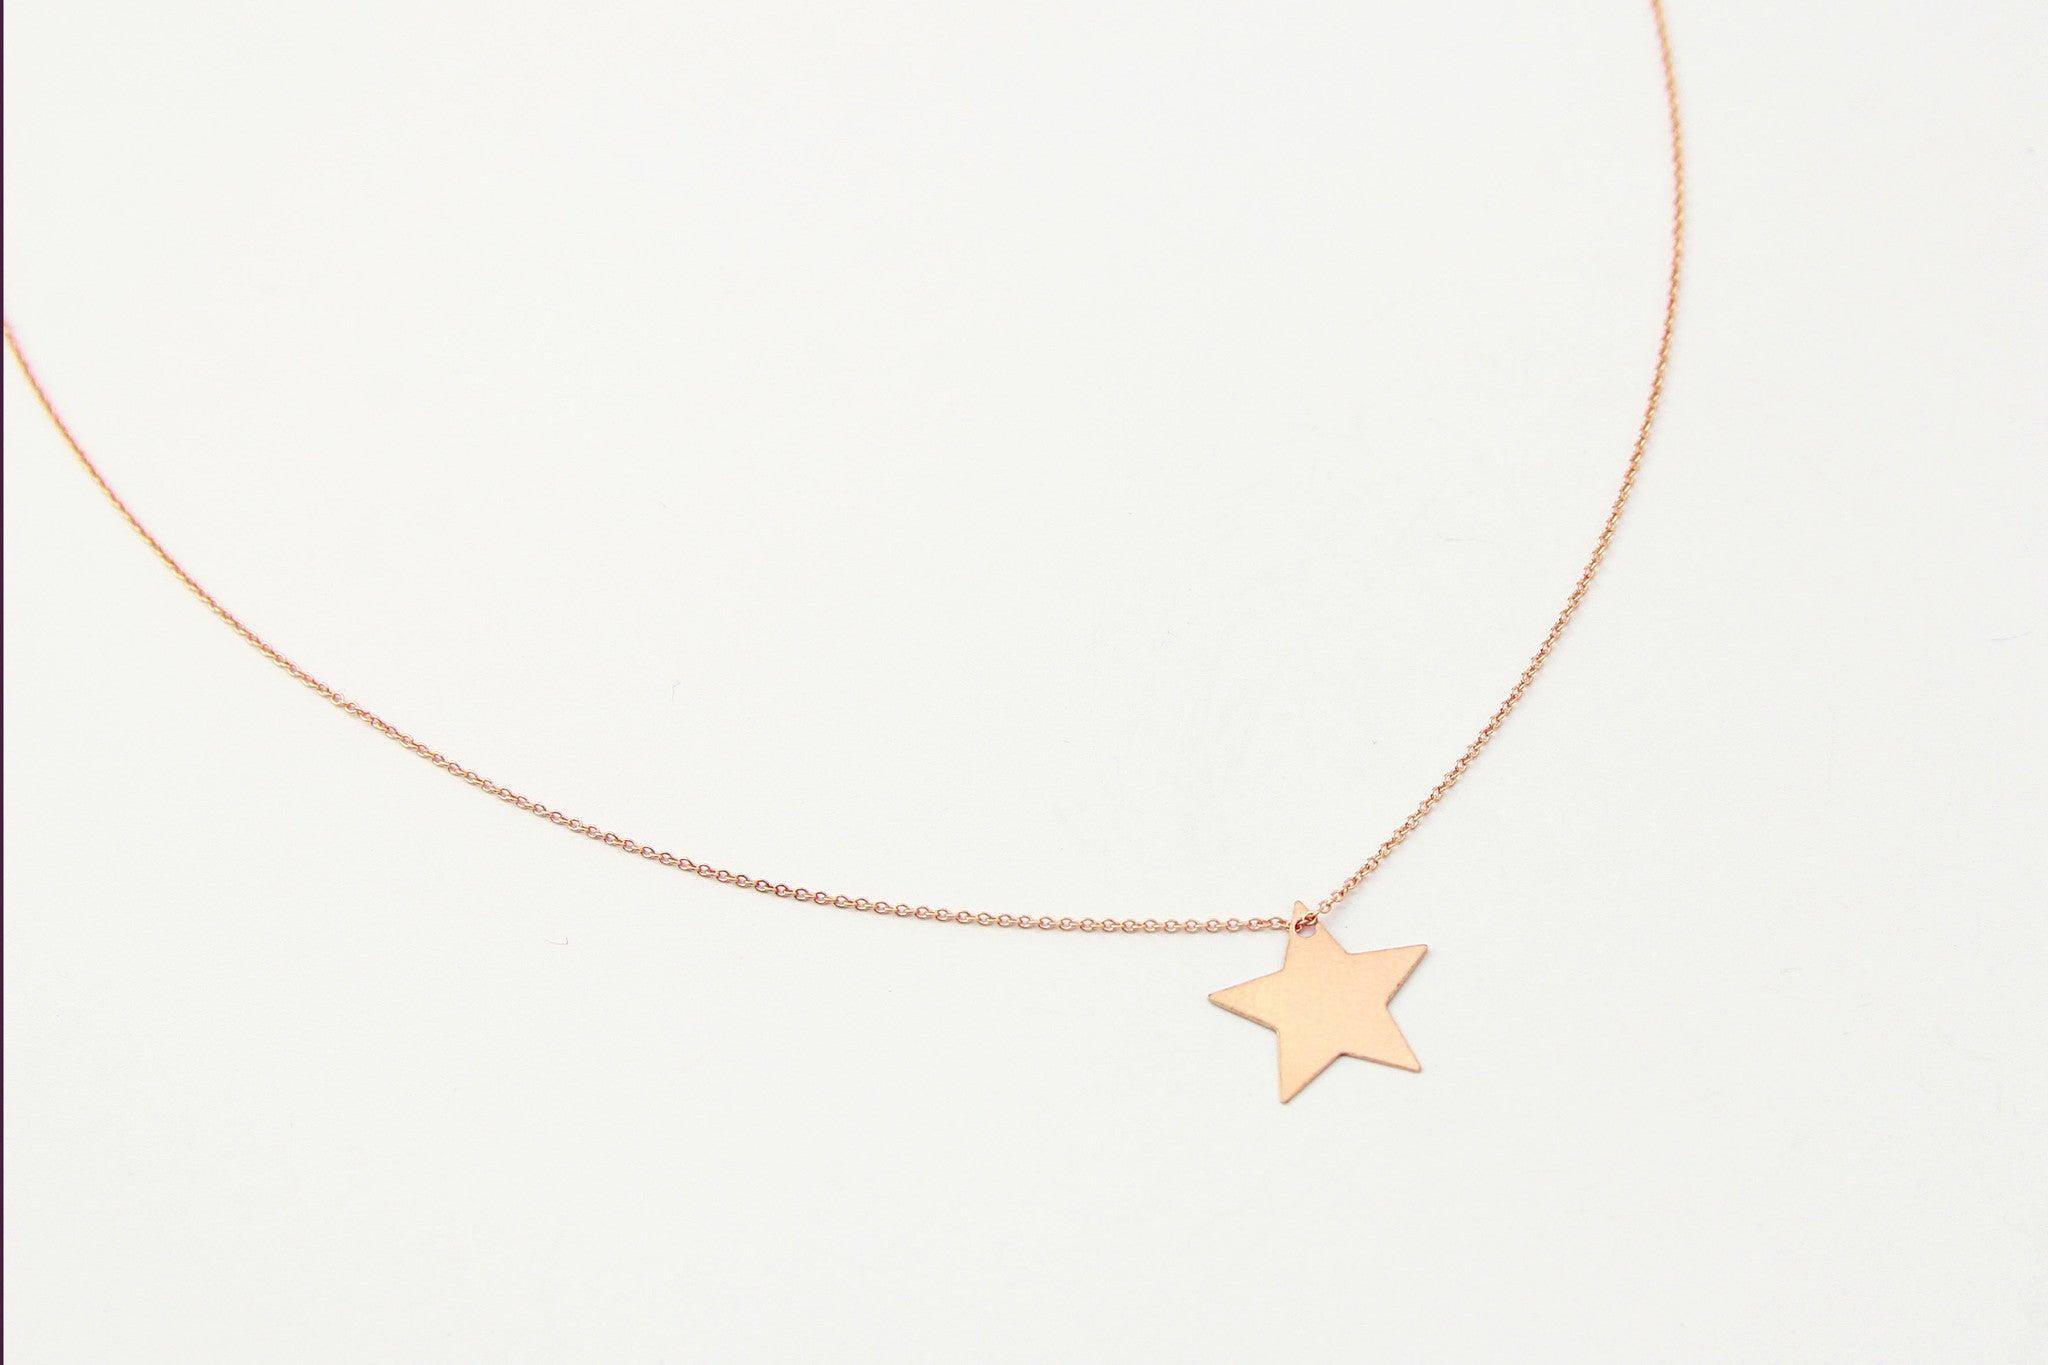 jewelberry  fine jewelry handmade with love fairtrade necklace kette plain star medium anchor chain rose gold plated sterling silver